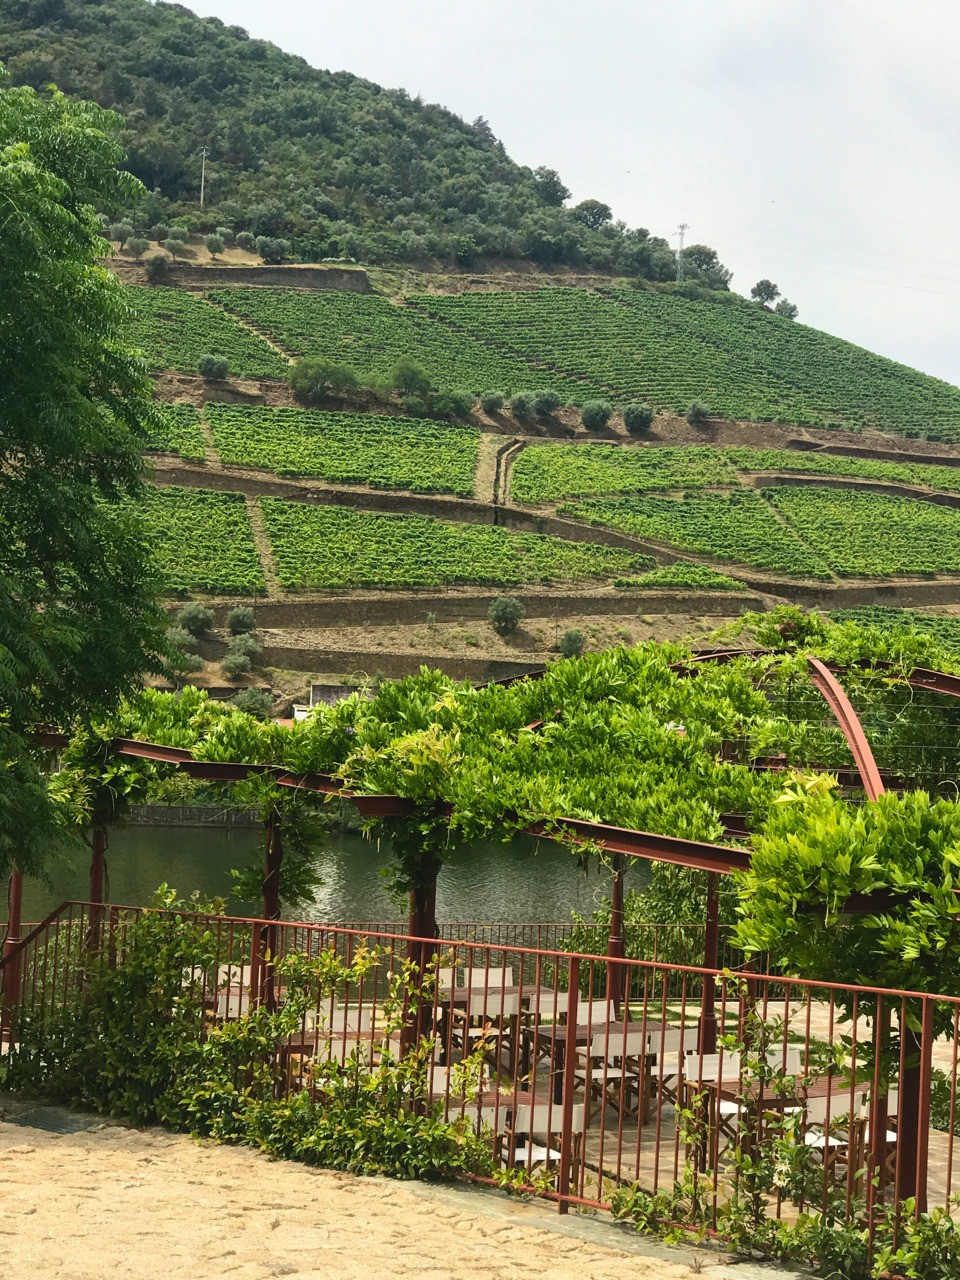 The Douro Valley in Portugal. Home to the original Port wines. Some of the wineries date back to the 1700s. It is a UNESCO World Heritage sight.